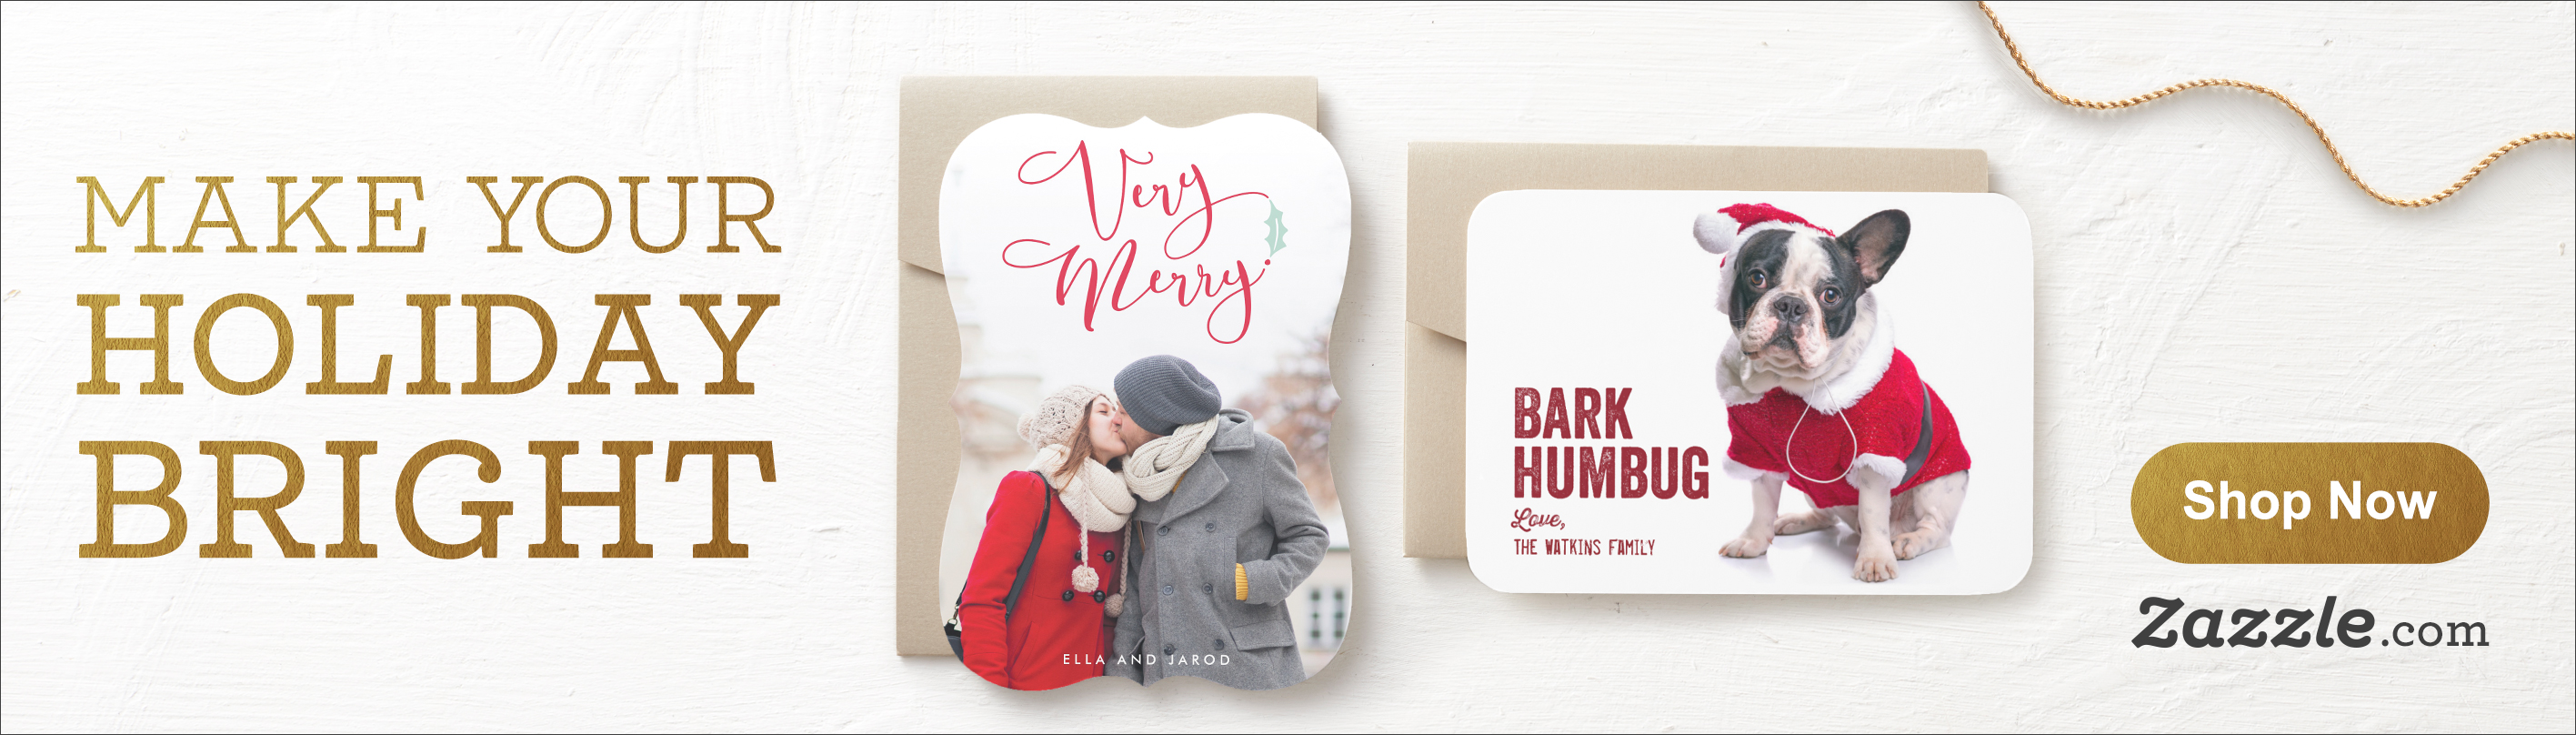 Shop Holiday Cards on Zazzle.com